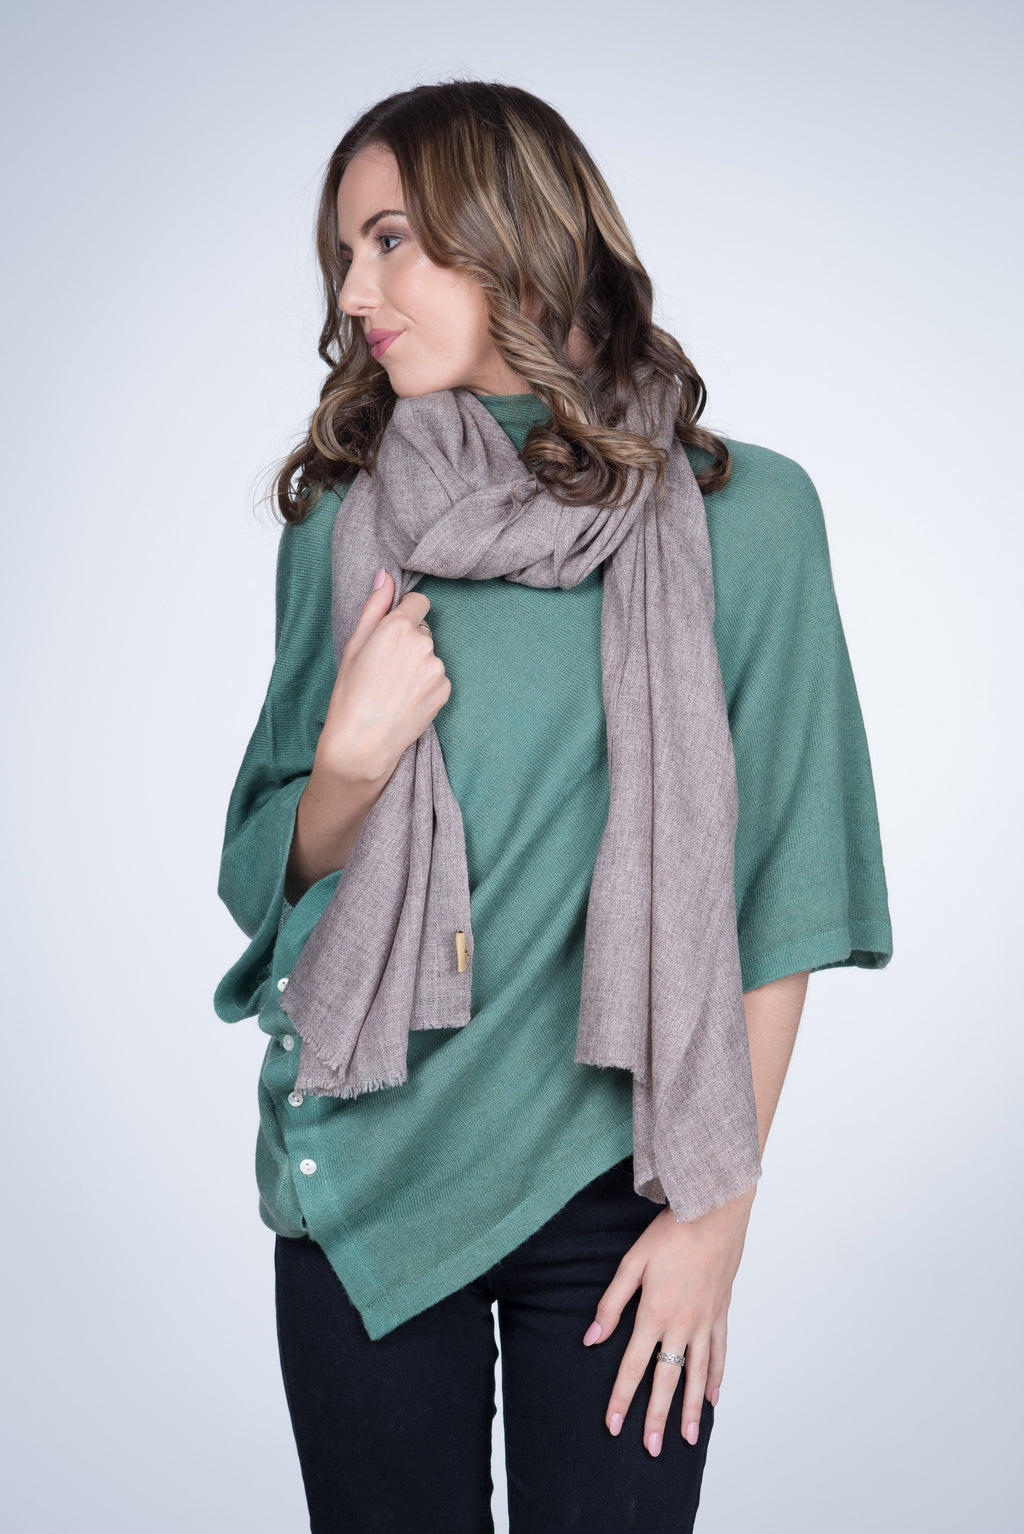 Nine Yaks Natural Cashmere Shawl - Light Brown -Accessories